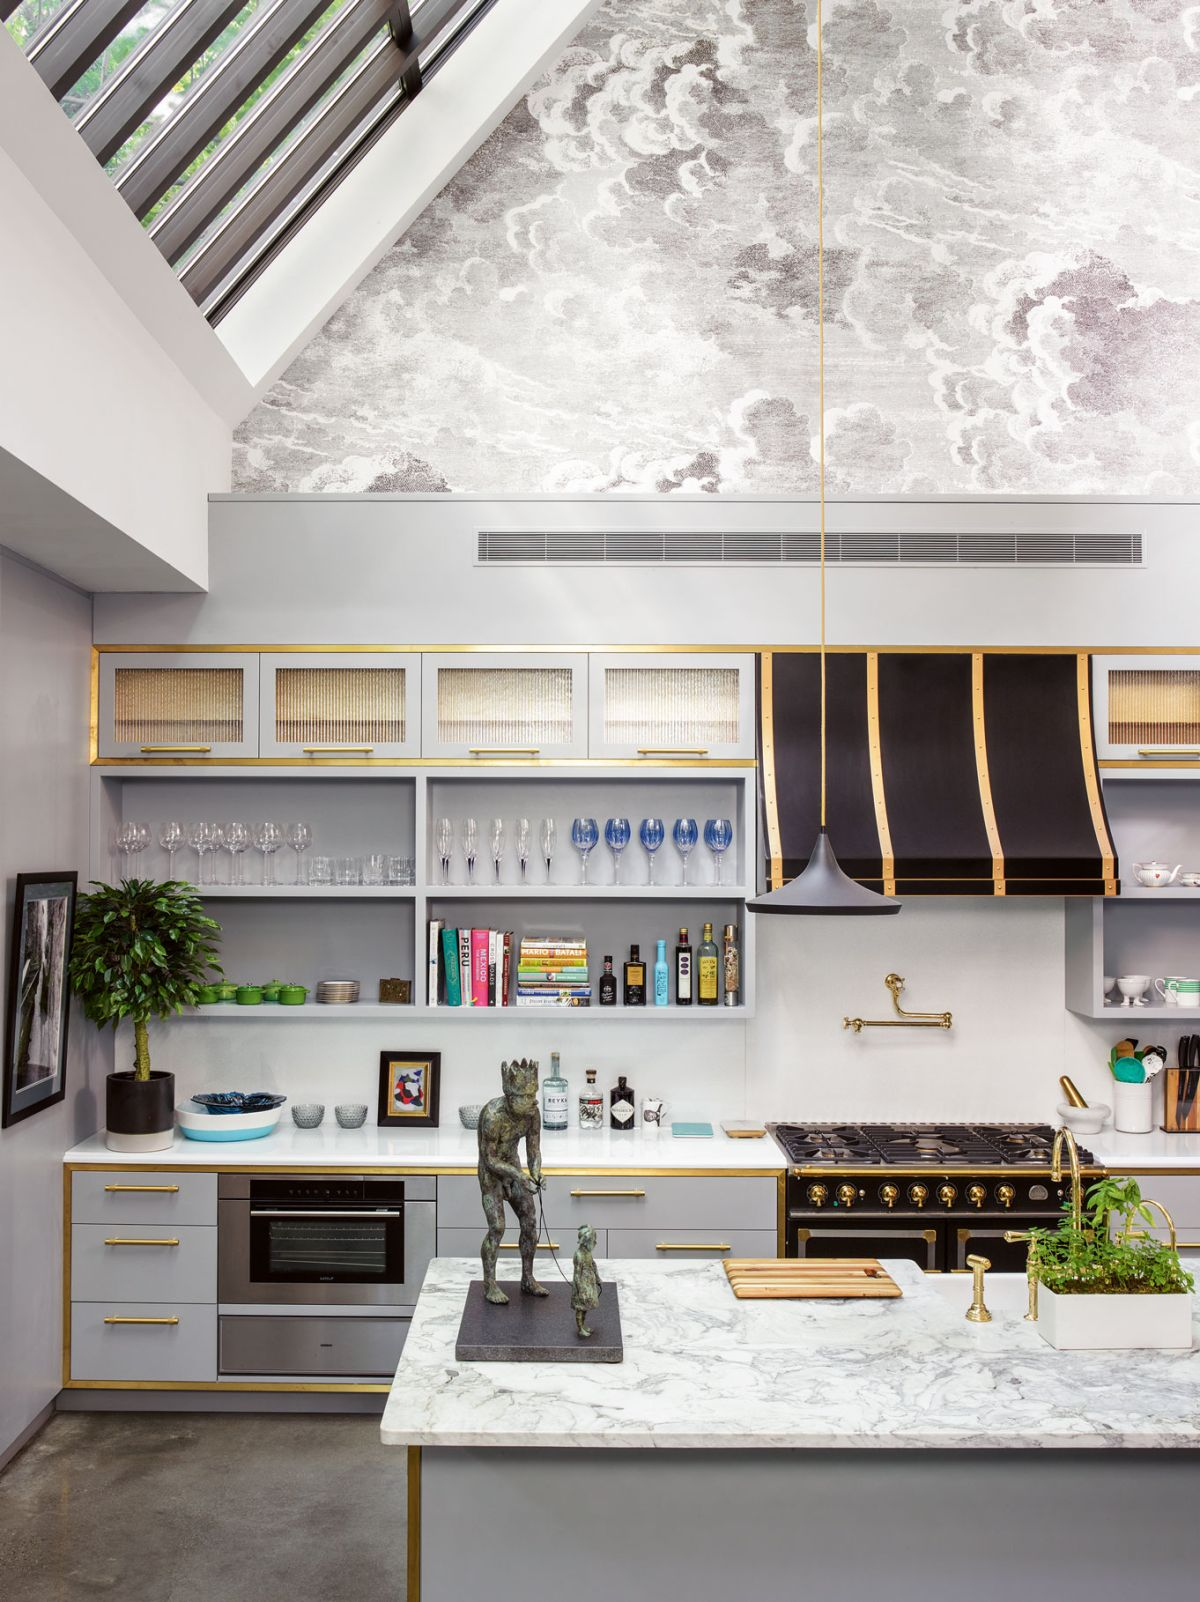 Renovation ideas – 9 dream home remodelling projects to inspire you in 2021